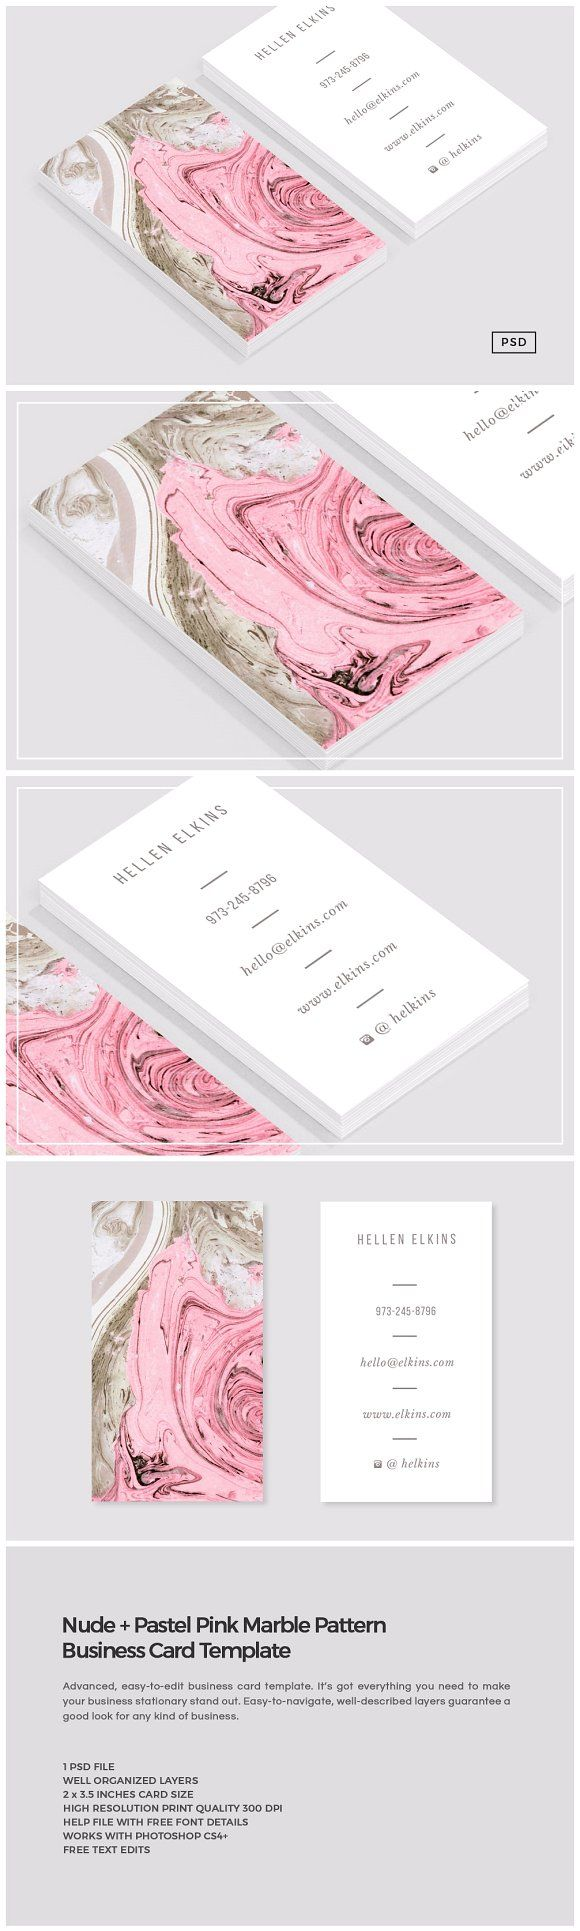 Nude + Pink Marble Business Card Template by The Design Label (MeeraG), via Creative Market.